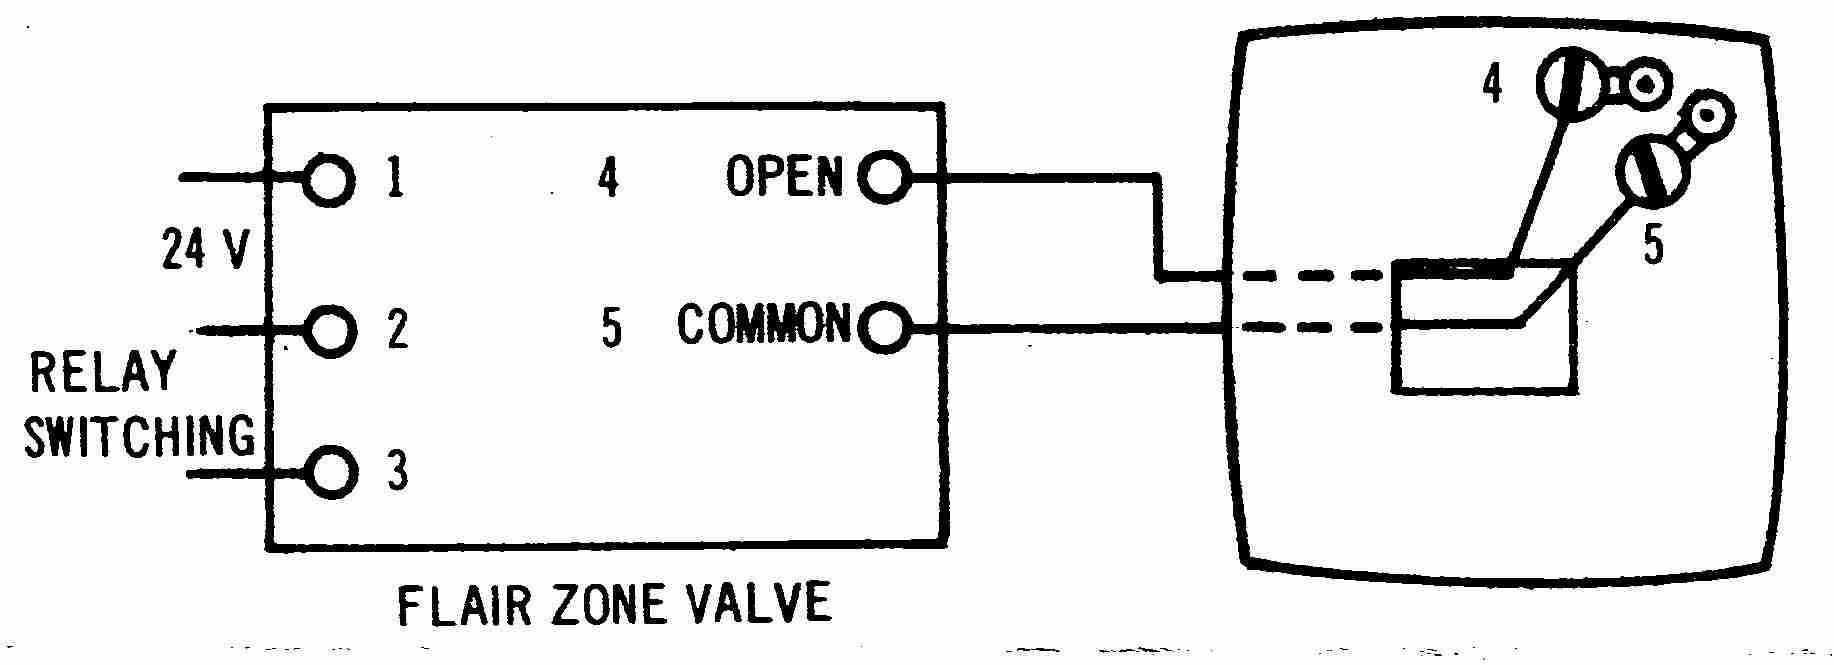 Flair2w_001_DJFc1 room thermostat wiring diagrams for hvac systems honeywell switching relay wiring diagram at panicattacktreatment.co